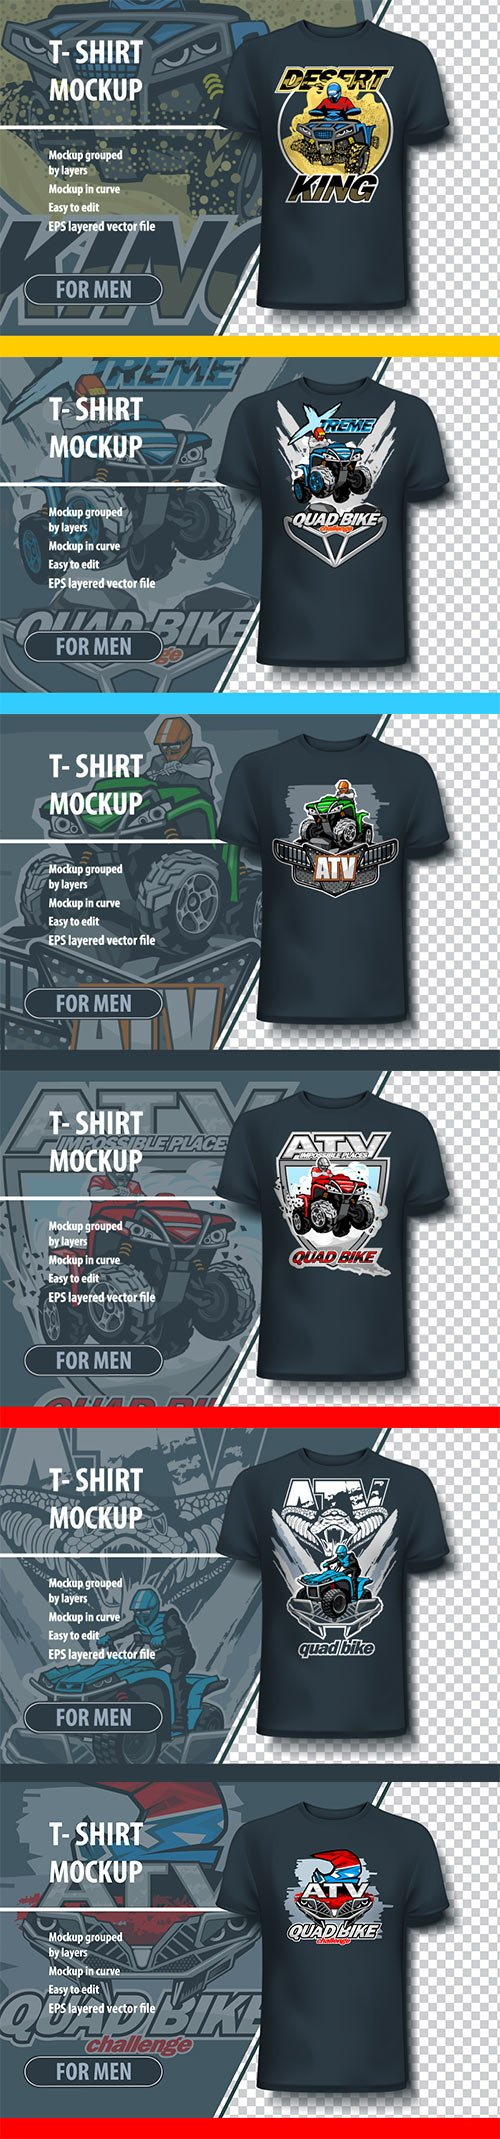 T-shirt mock-up vector template with logo